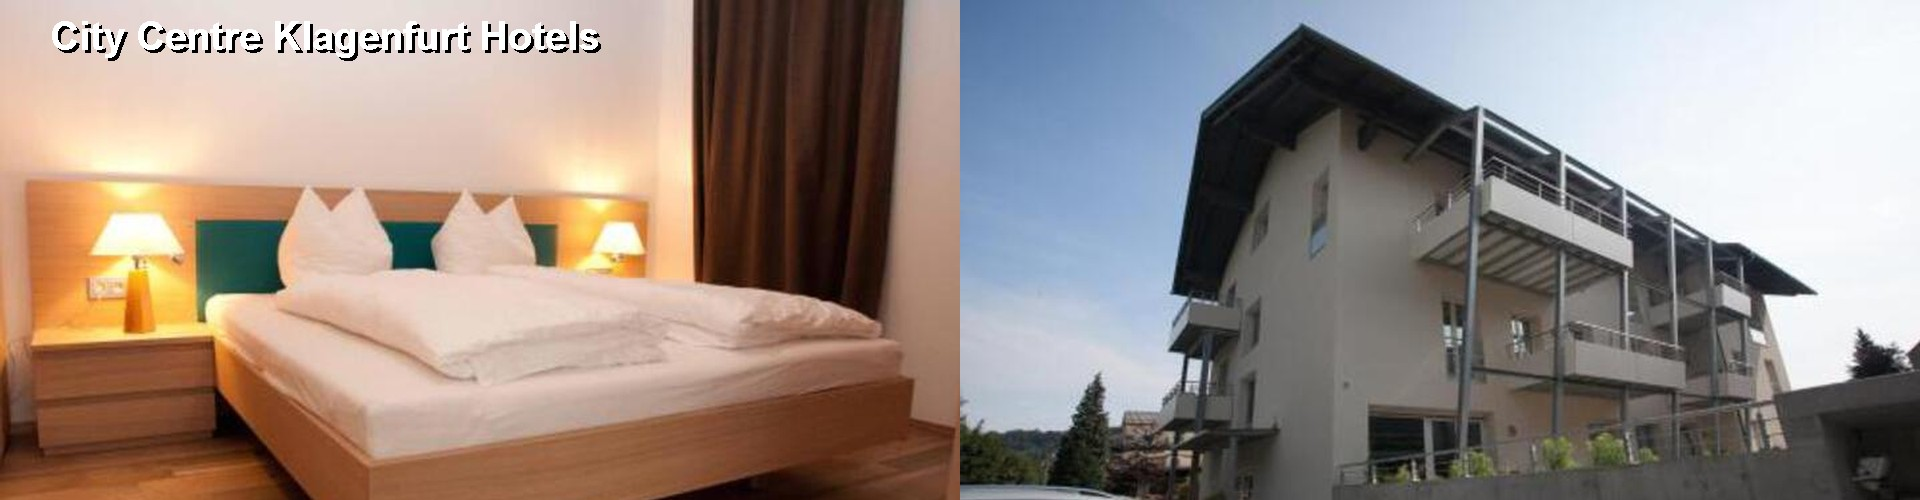 2 Best Hotels near City Centre Klagenfurt